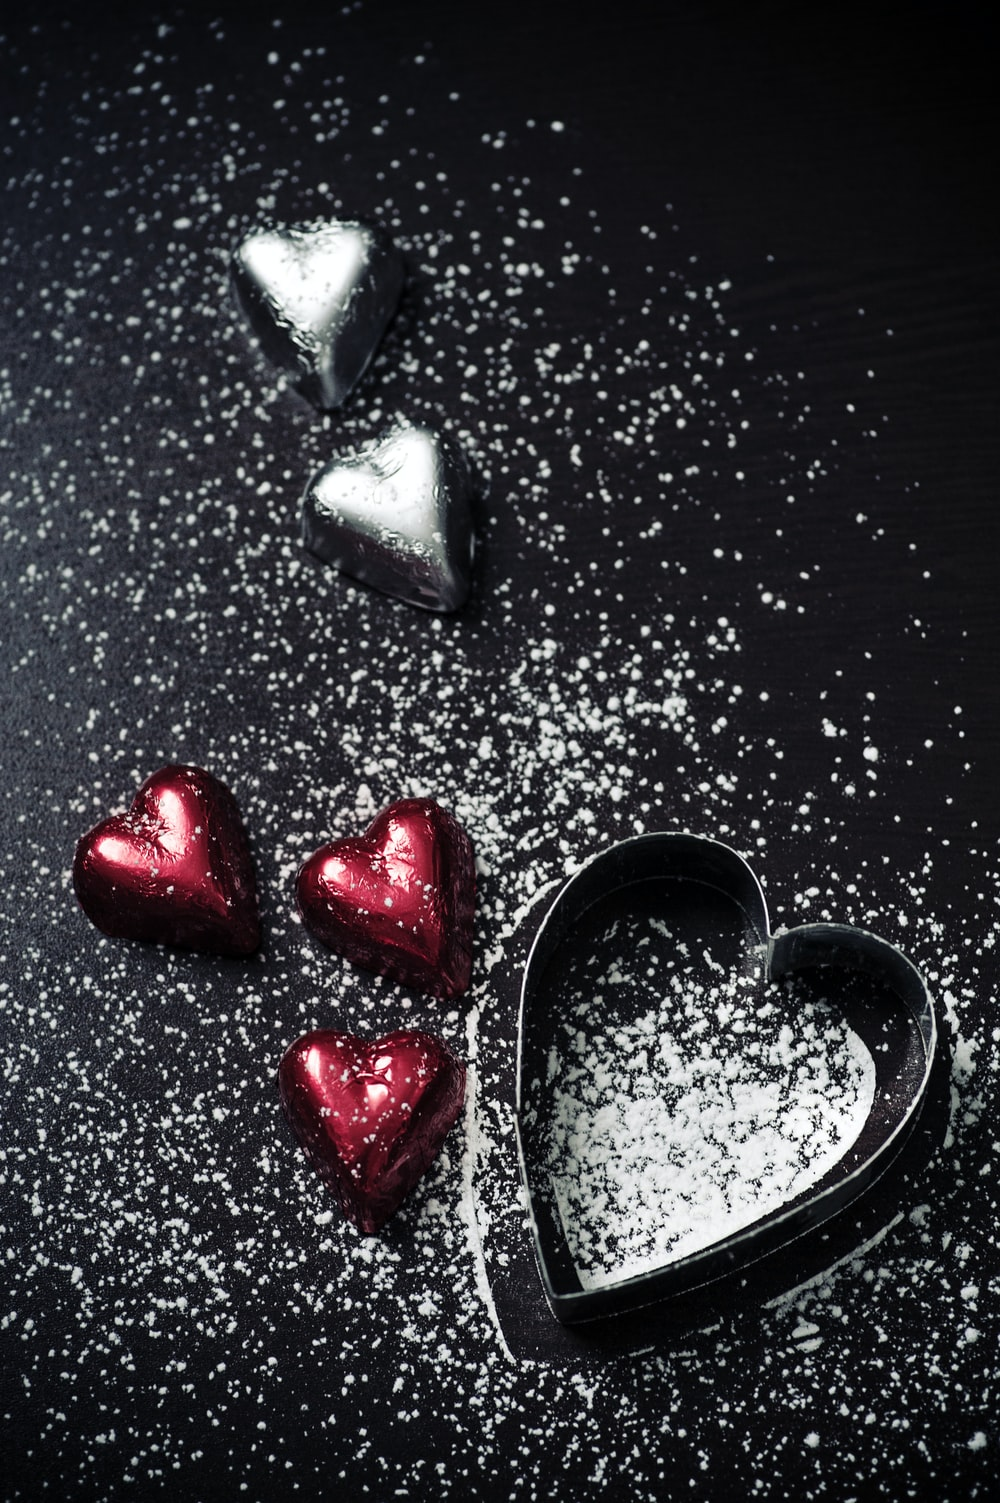 Chocolate hearts and sugar hd photo by jasmine waheed